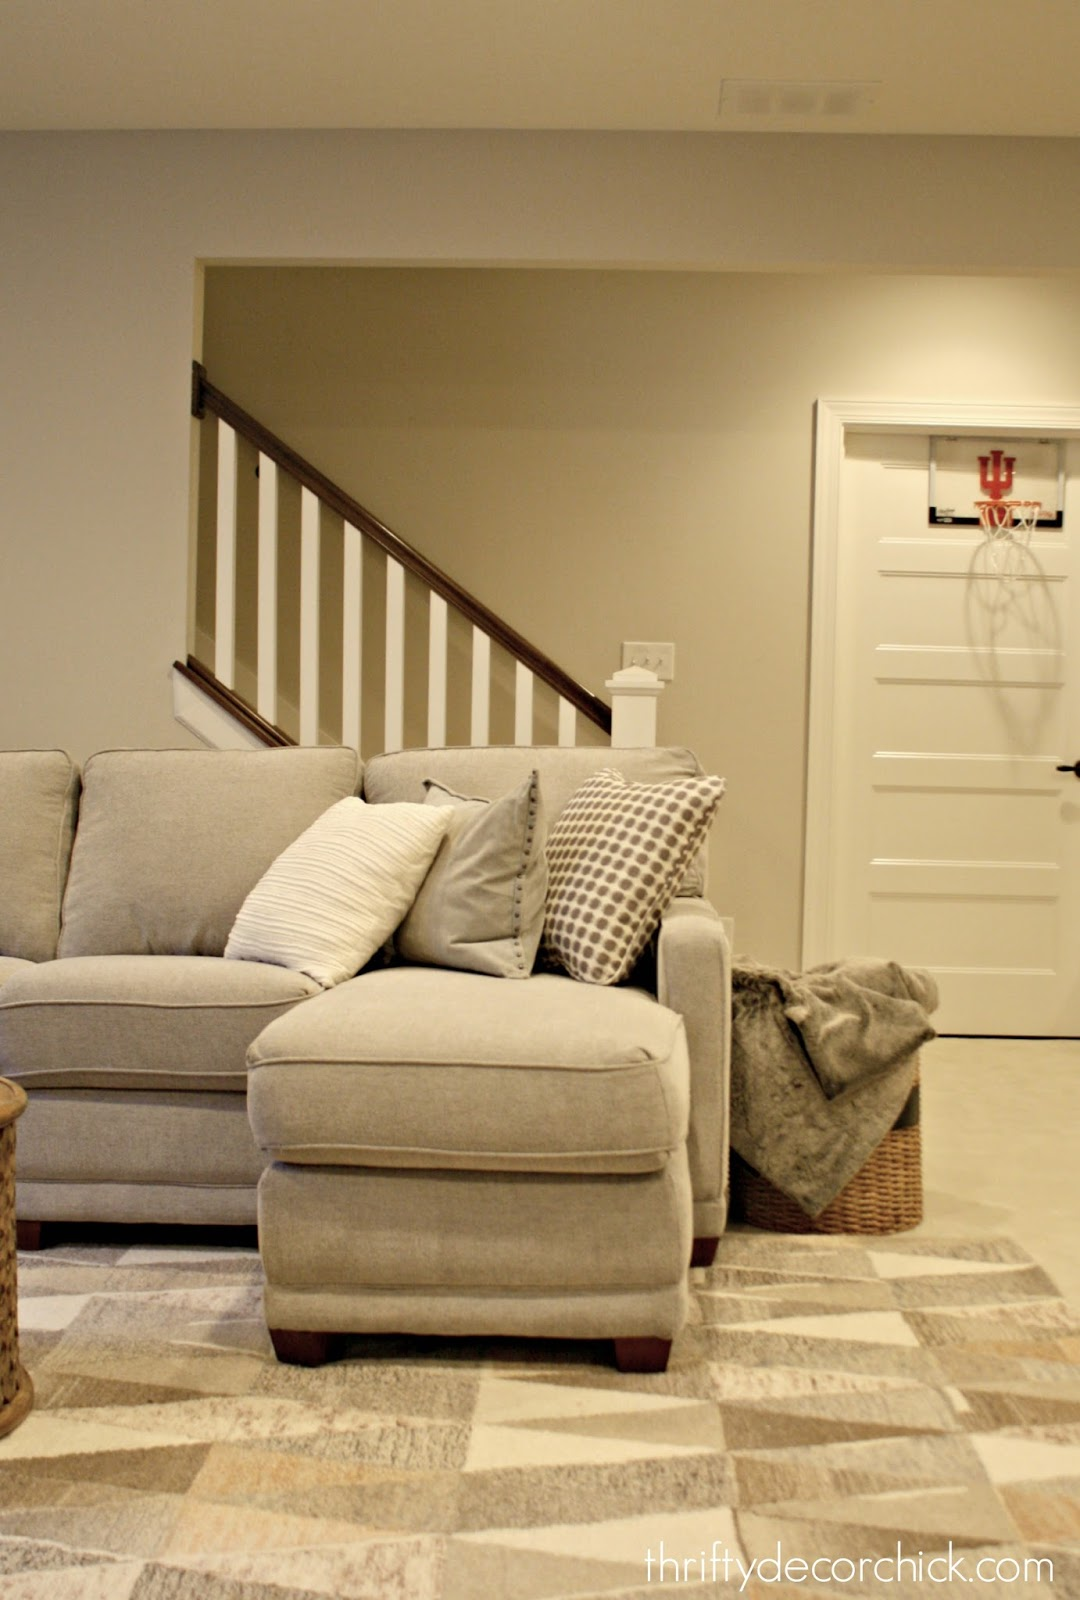 Our coziest room in the house! from Thrifty Decor Chick